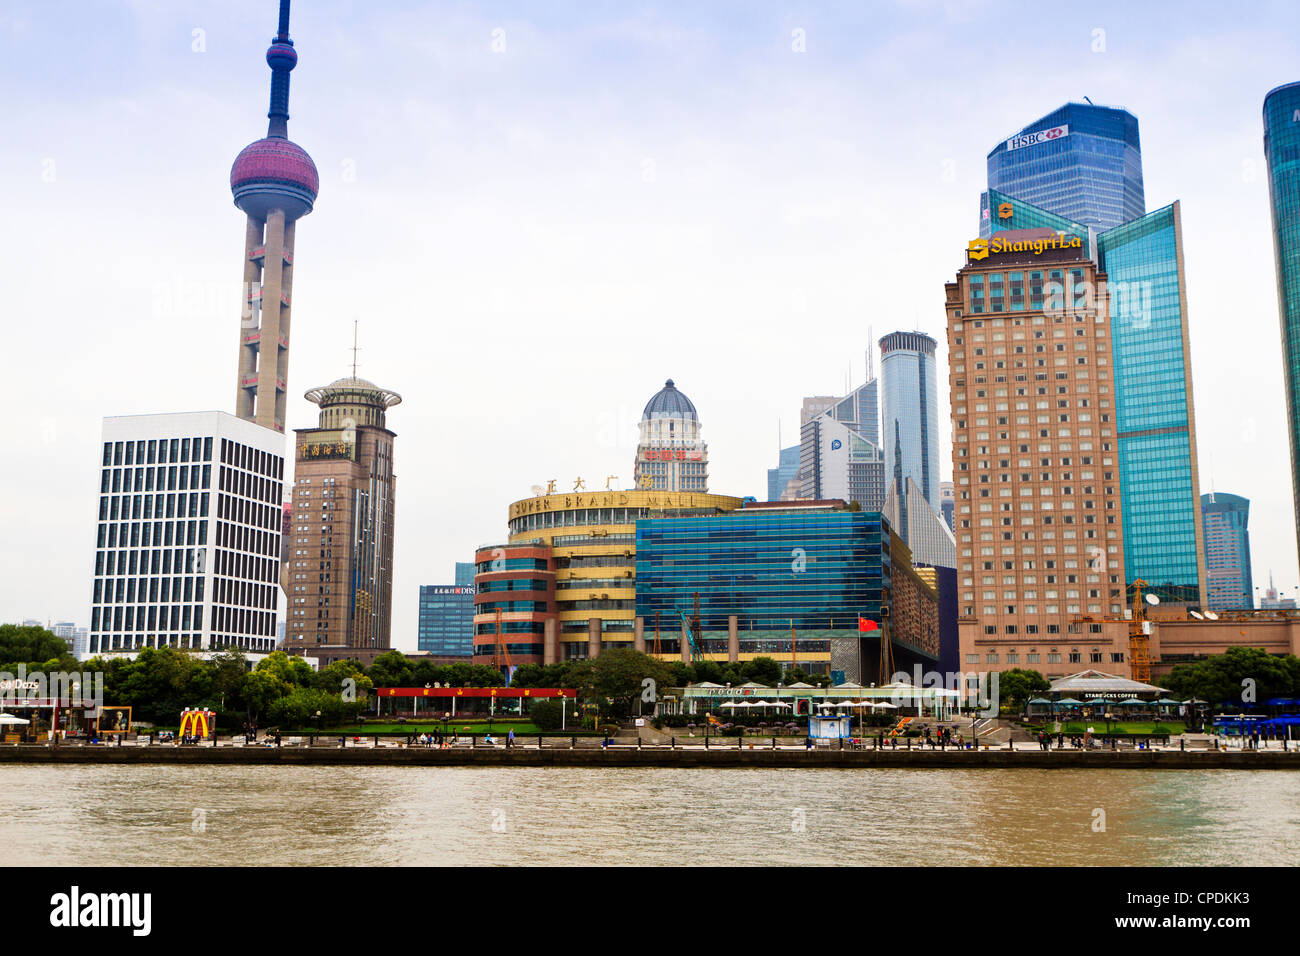 Pudong skyline across the Huangpu River, Oriental Pearl tower on left, Shanghai, China, Asia - Stock Image